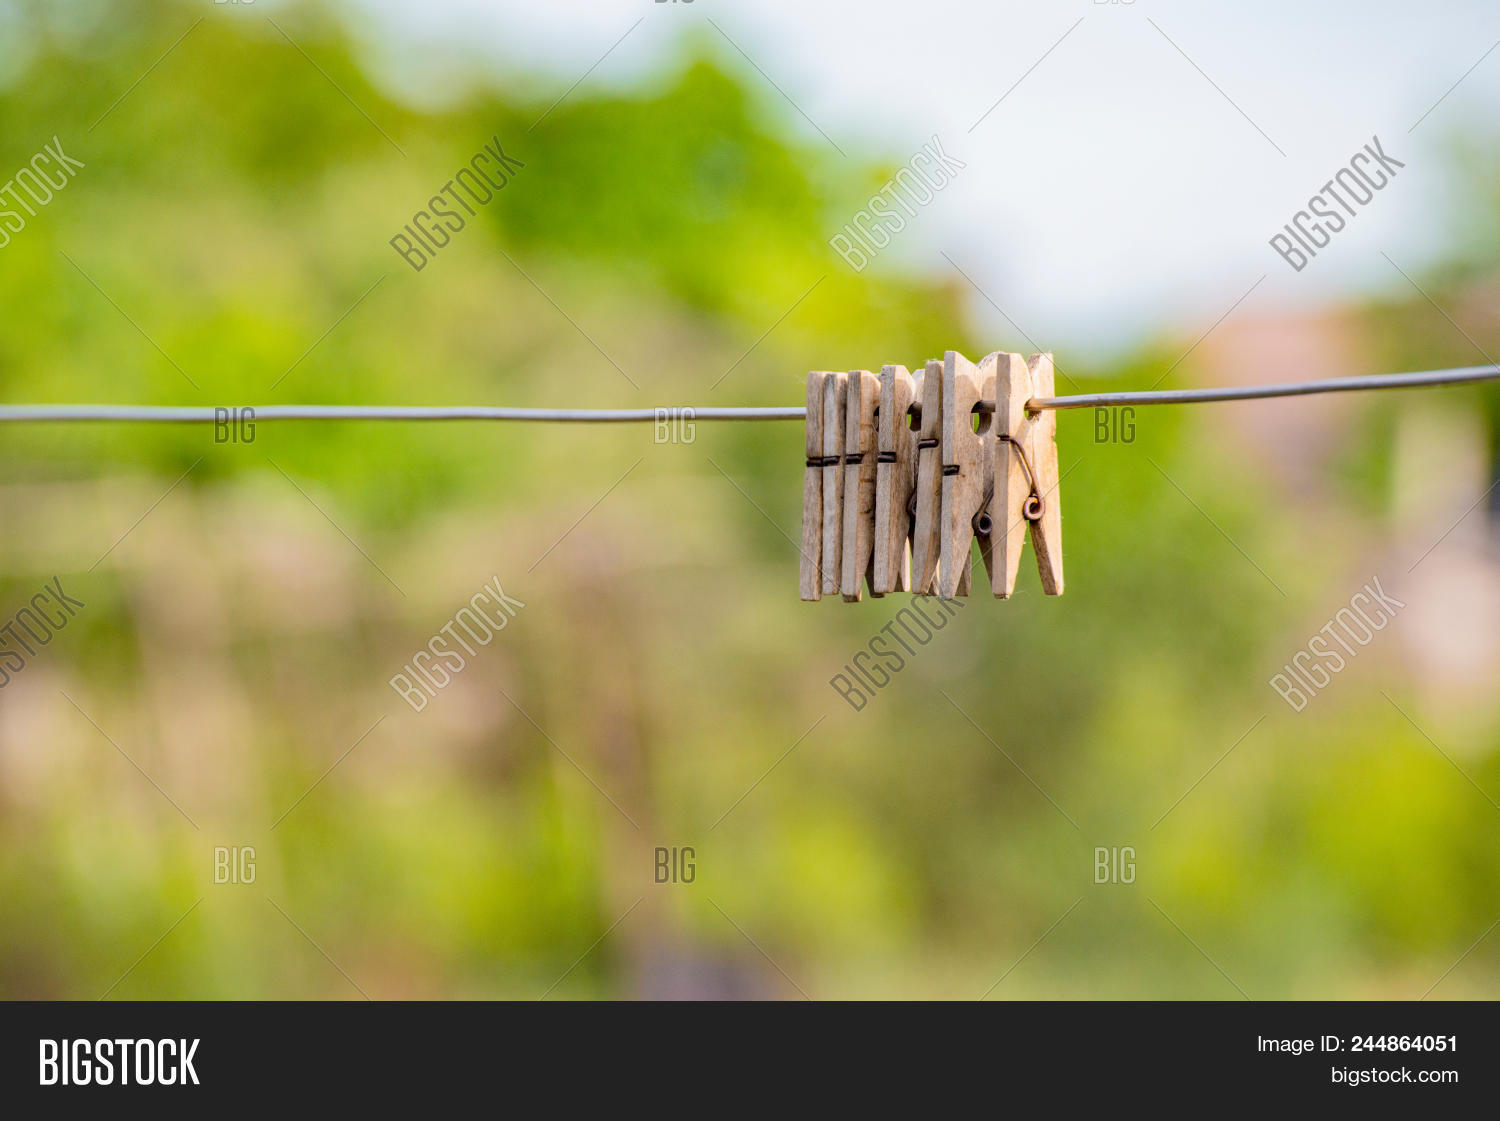 Wooden Clothespins Image Photo Free Trial Bigstock